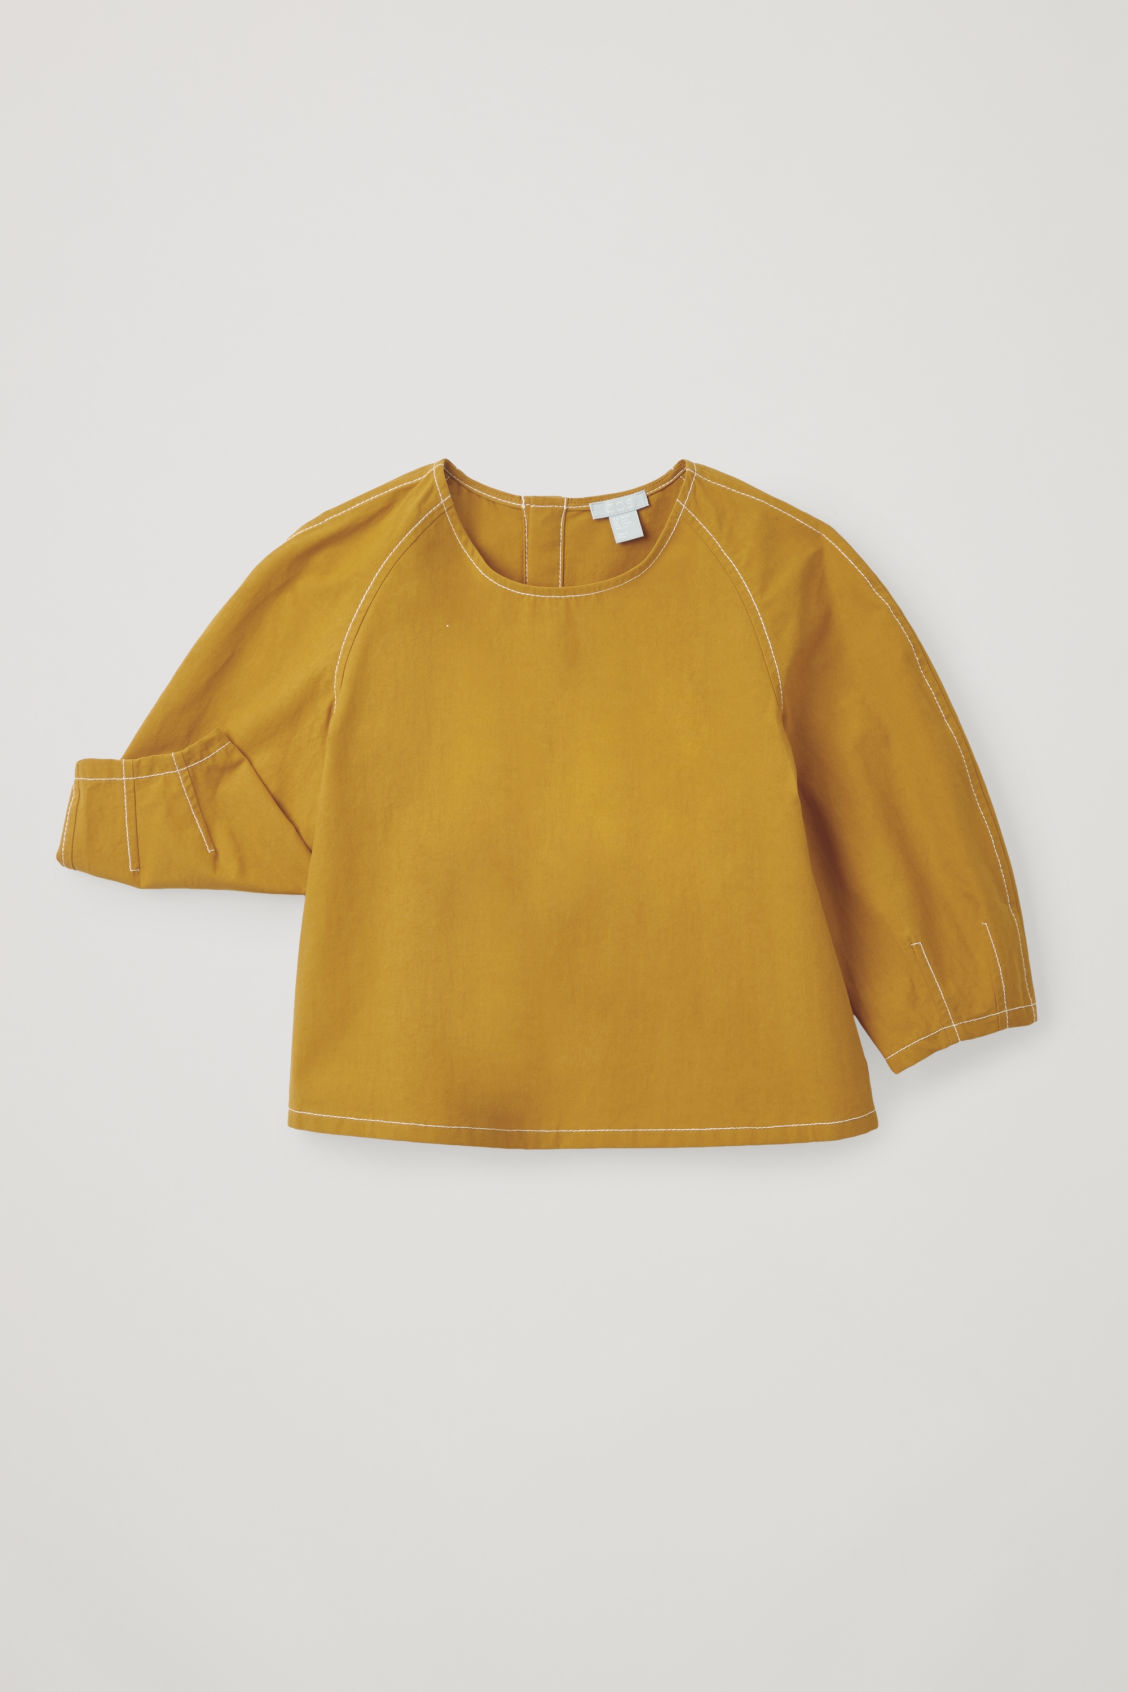 Detailed image of Cos contrast-stitch cotton top in yellow